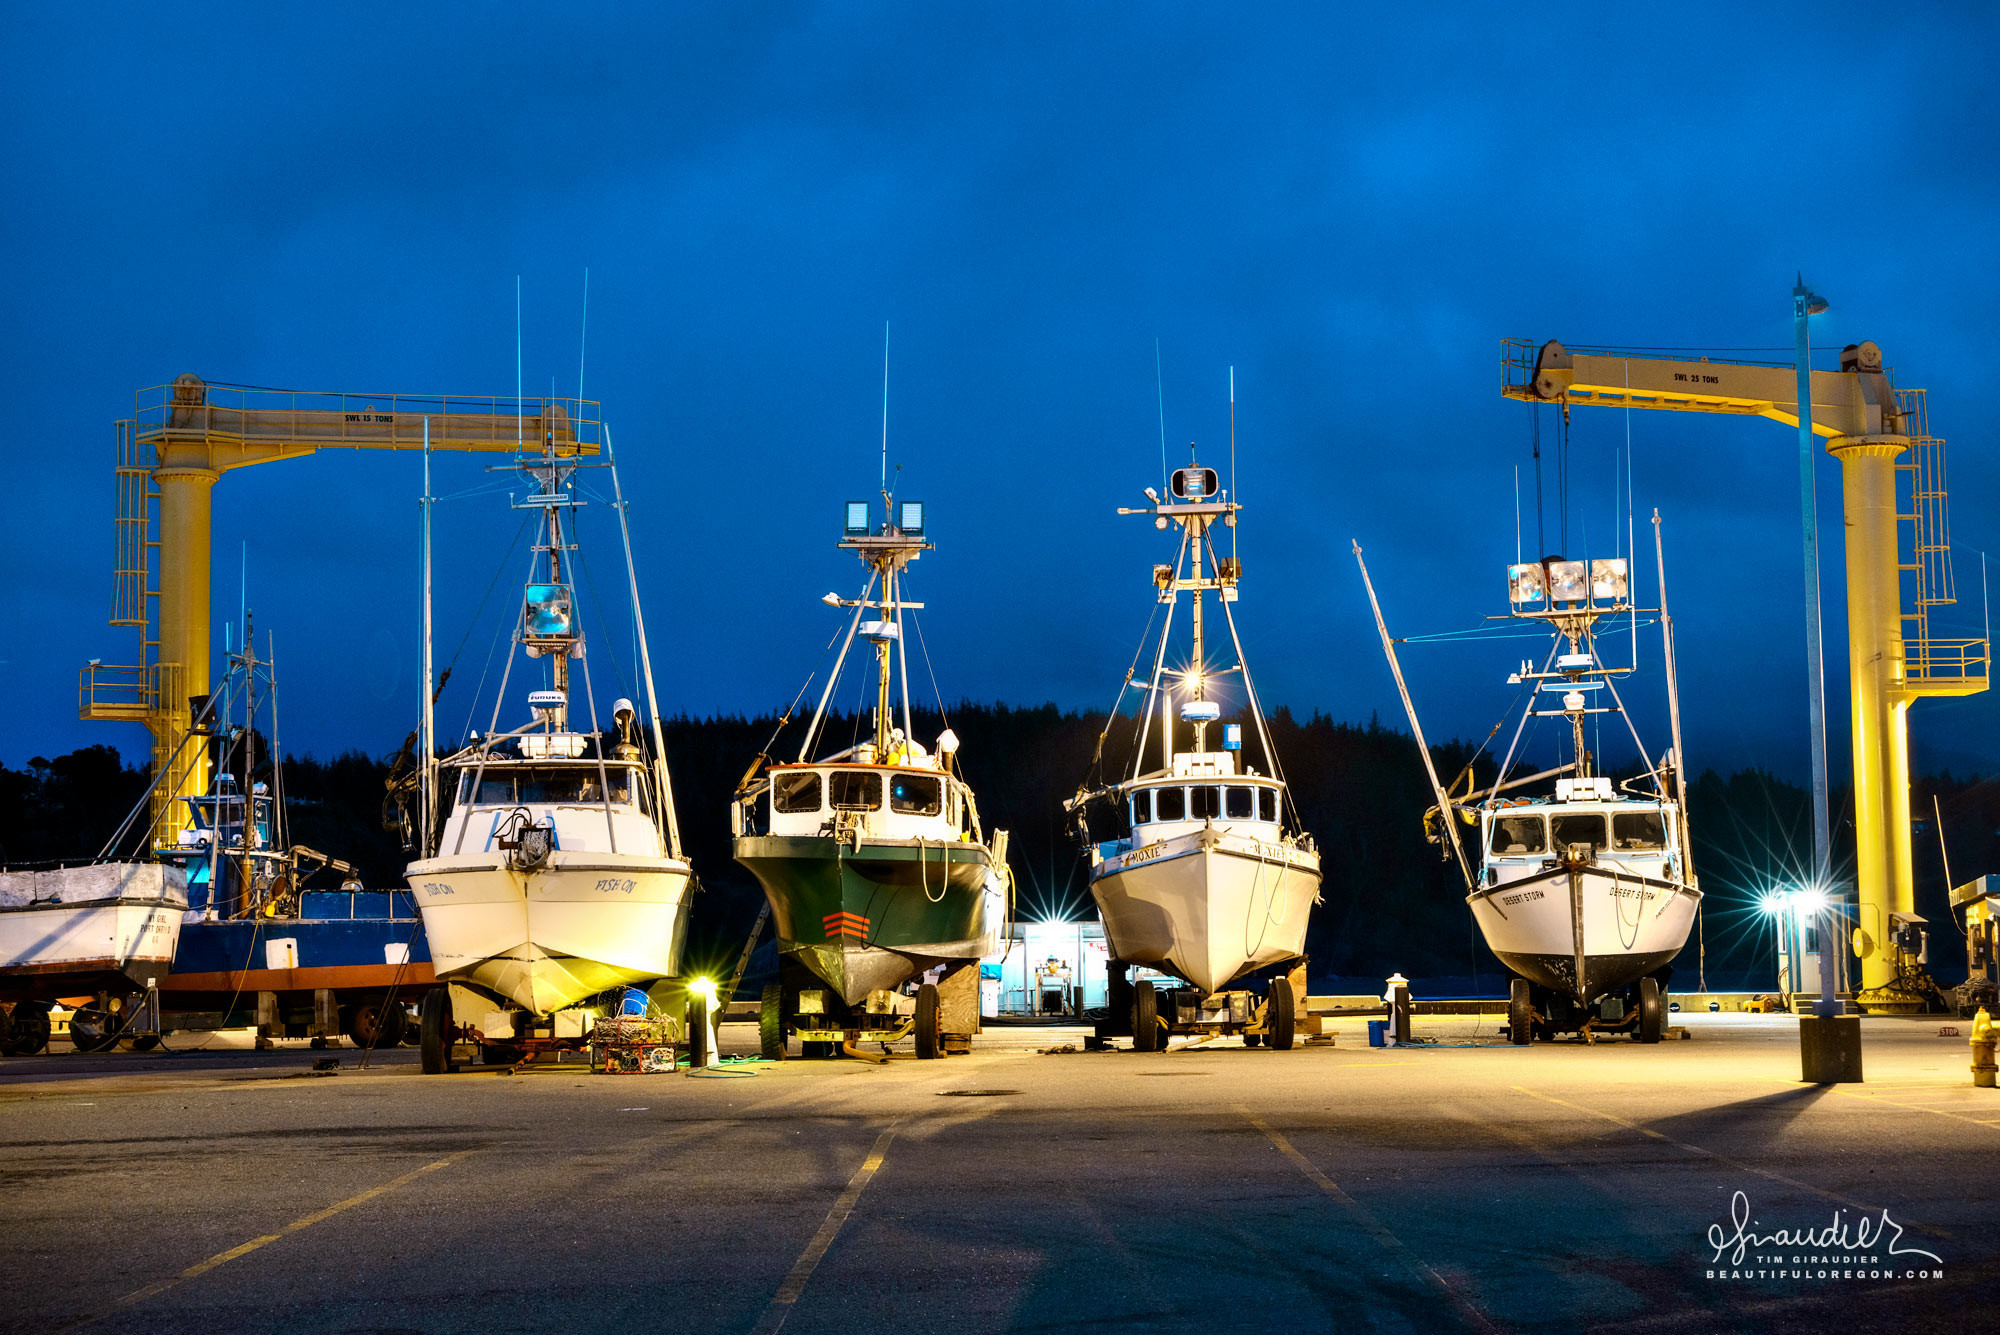 In Port Orford the fishing fleet is hoisted from the sea and safely stored upon repurposed truck chassis. Curry County, Oregon South Coast.